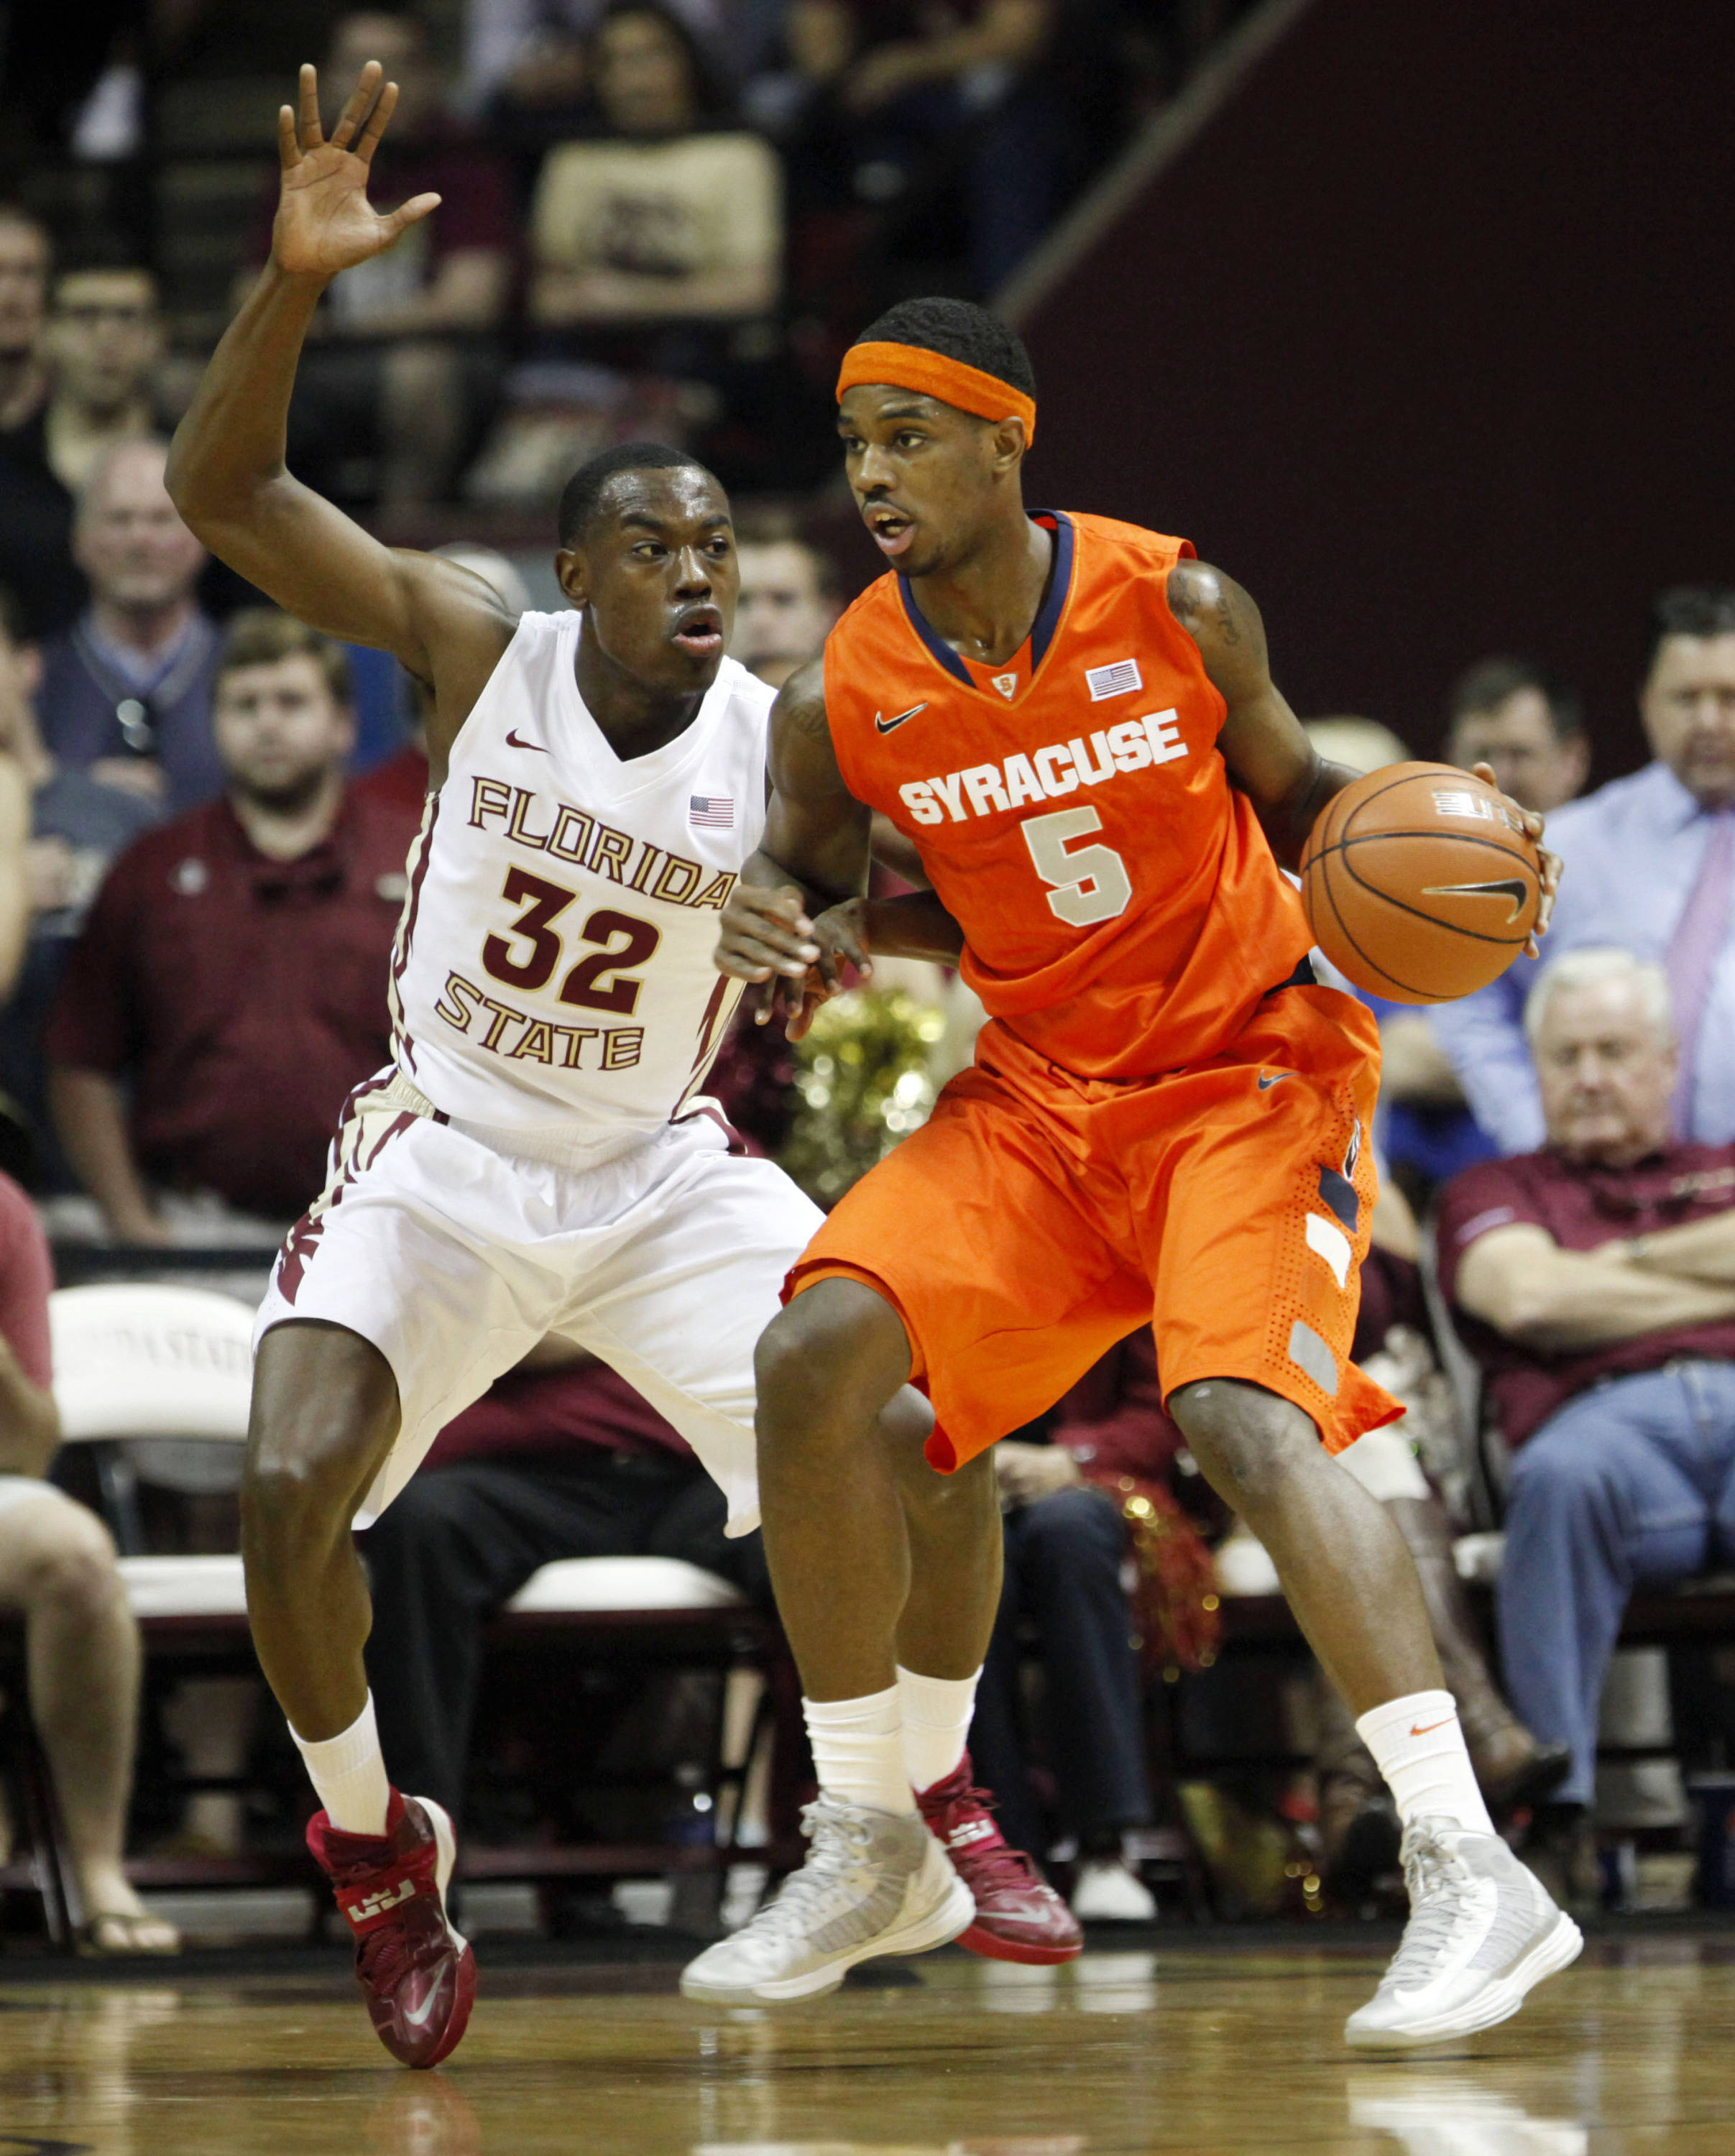 Mar 9, 2014; Tallahassee, FL, USA; Florida State Seminoles guard Montay Brandon (32) guards Syracuse Orange forward C.J. Fair (5) during the first half at Donald L. Tucker Center. Mandatory Credit: Matt Stamey-USA TODAY Sports